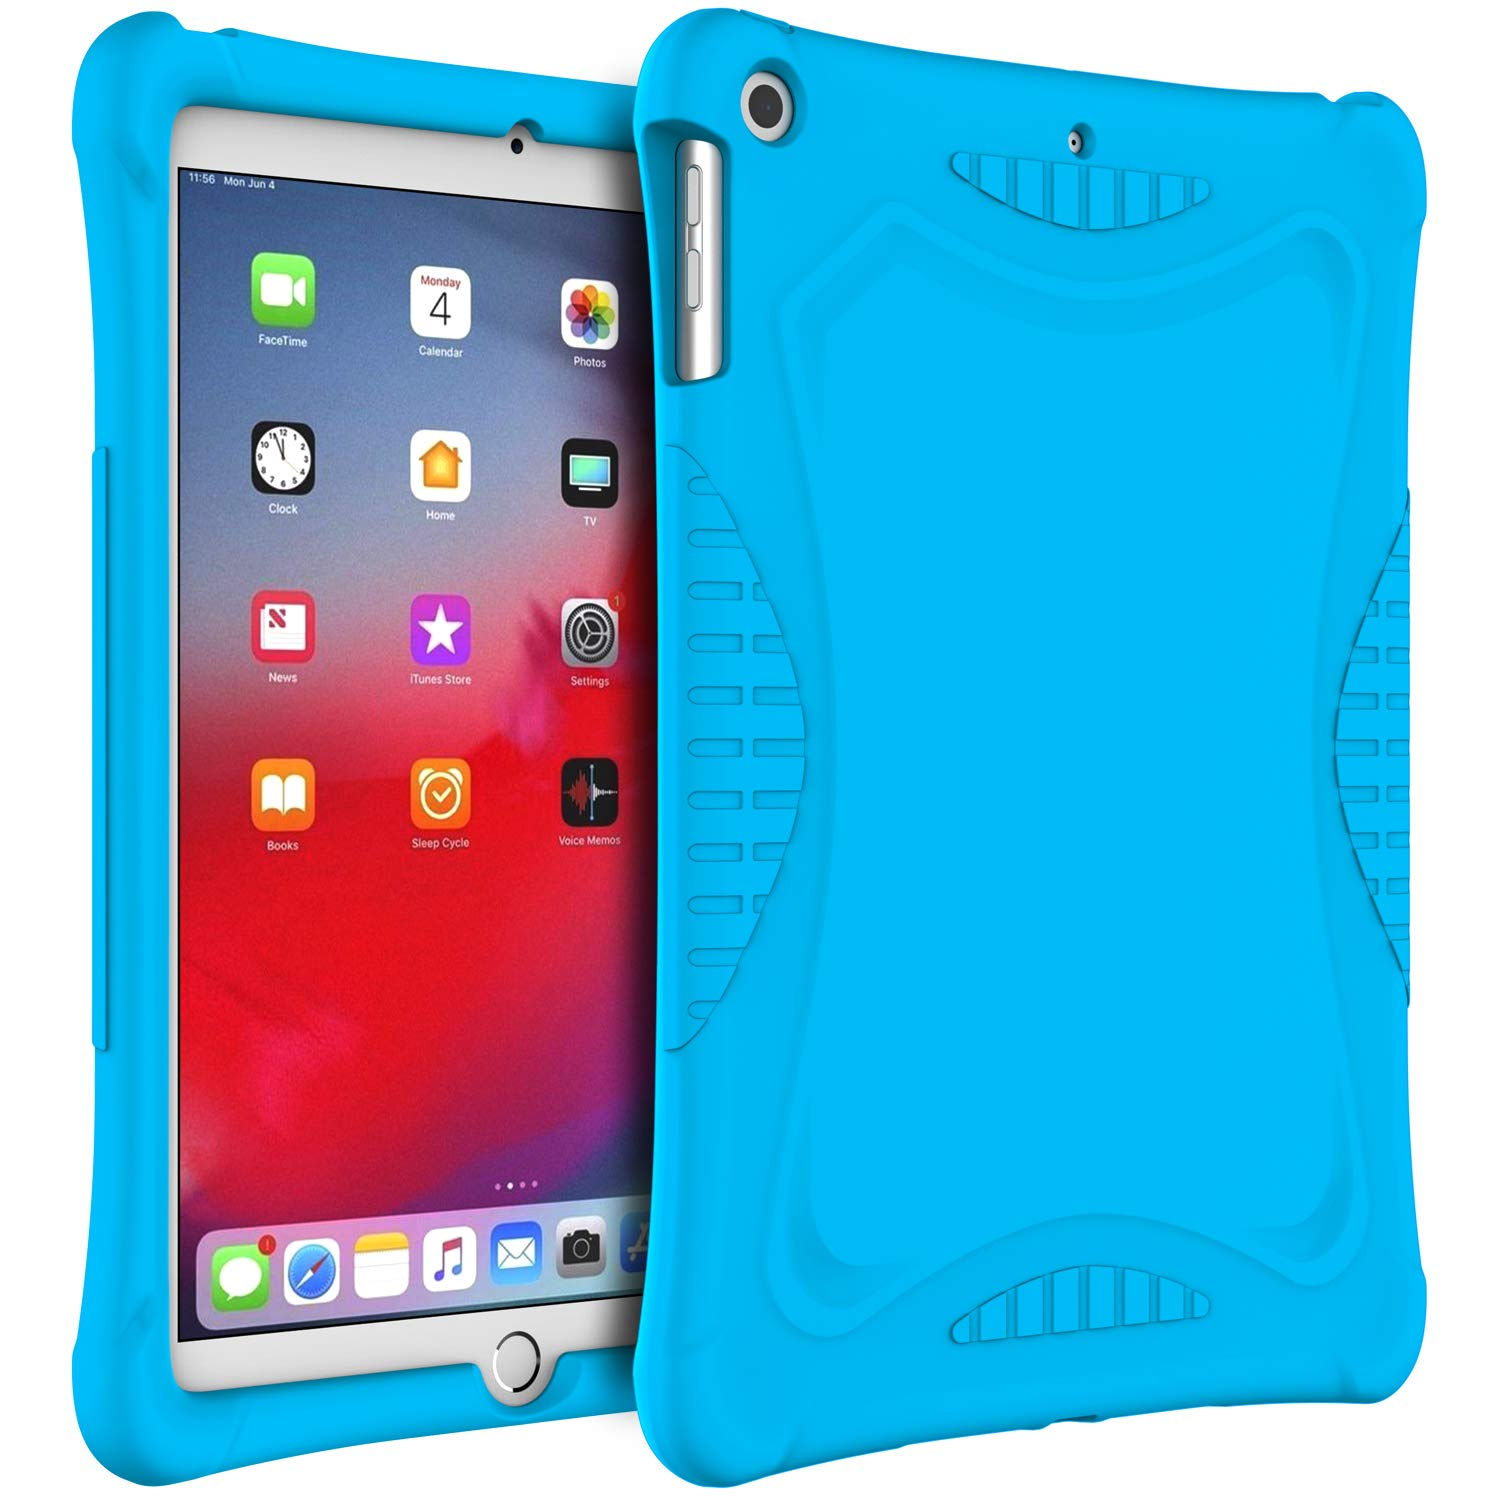 JETech Case for iPad 9.7-inch (2018/2017 Model, 6th/5th Generation), Anti Slip Design Kids-Friendly, Shockproof Soft Silicone Protective Cover, Blue